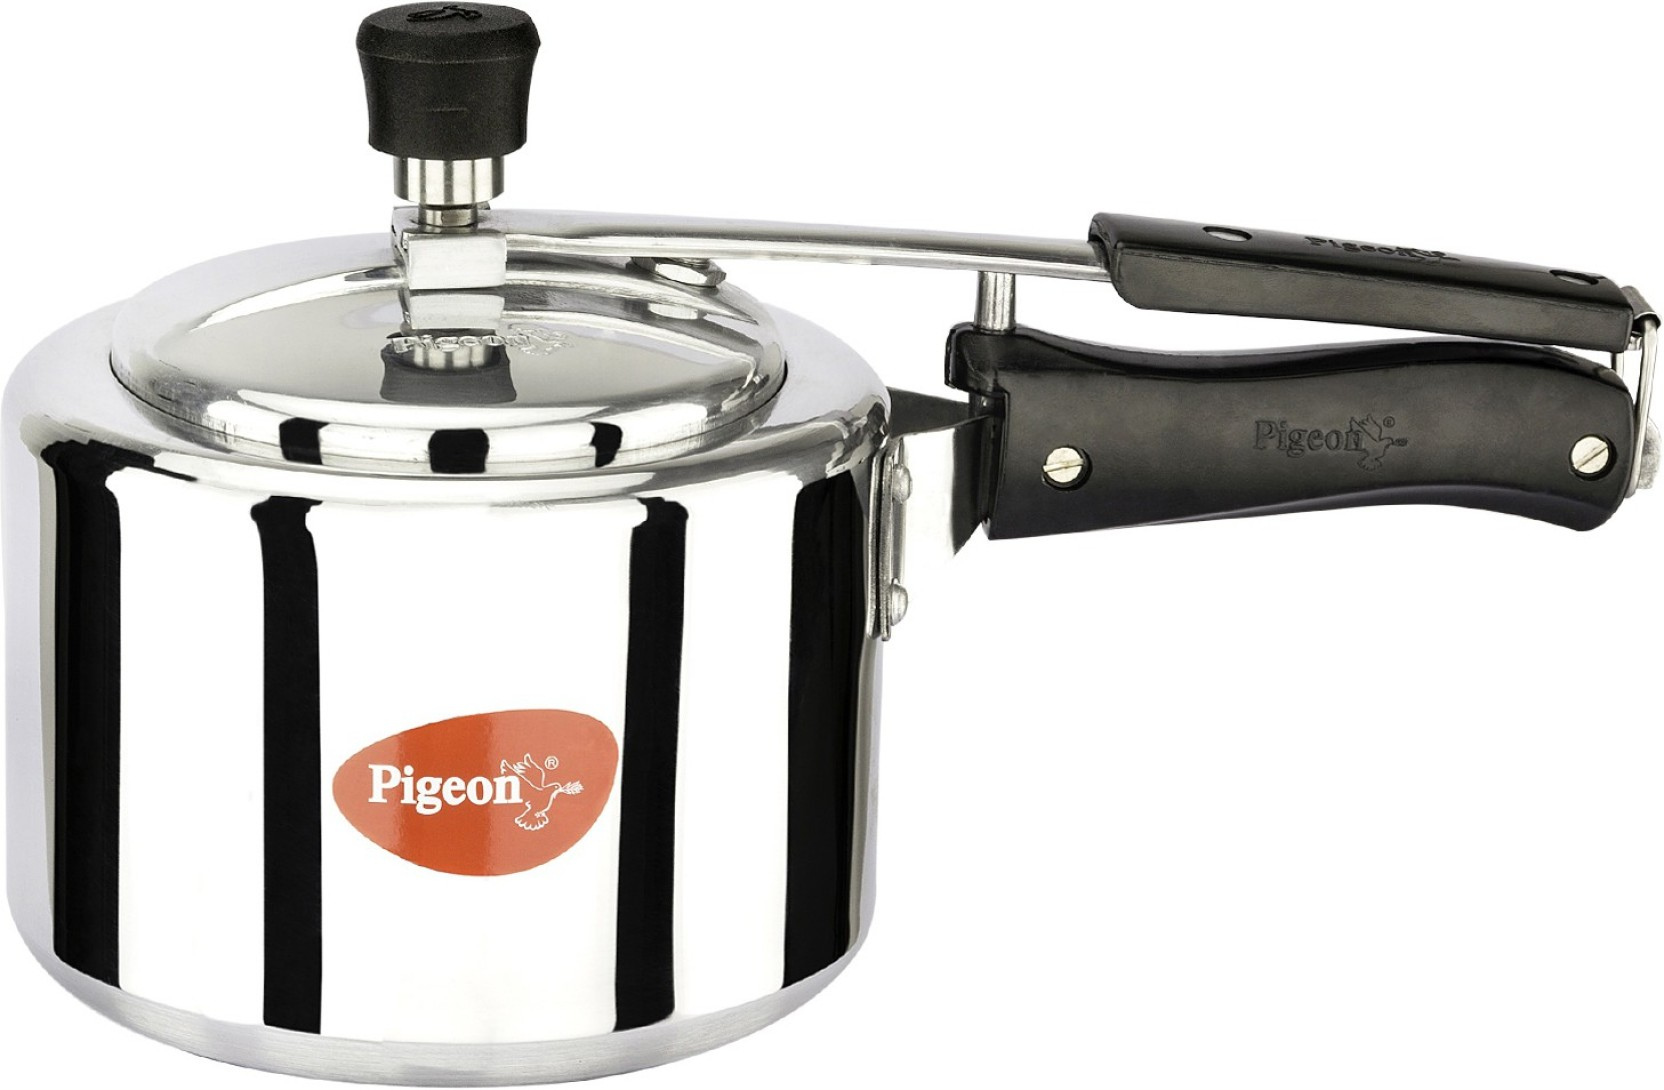 Pigeon Special 3 L Pressure Cooker With Induction Bottom Price In Buy Circuit Boardelectric Cookerinduction Add To Cart Now